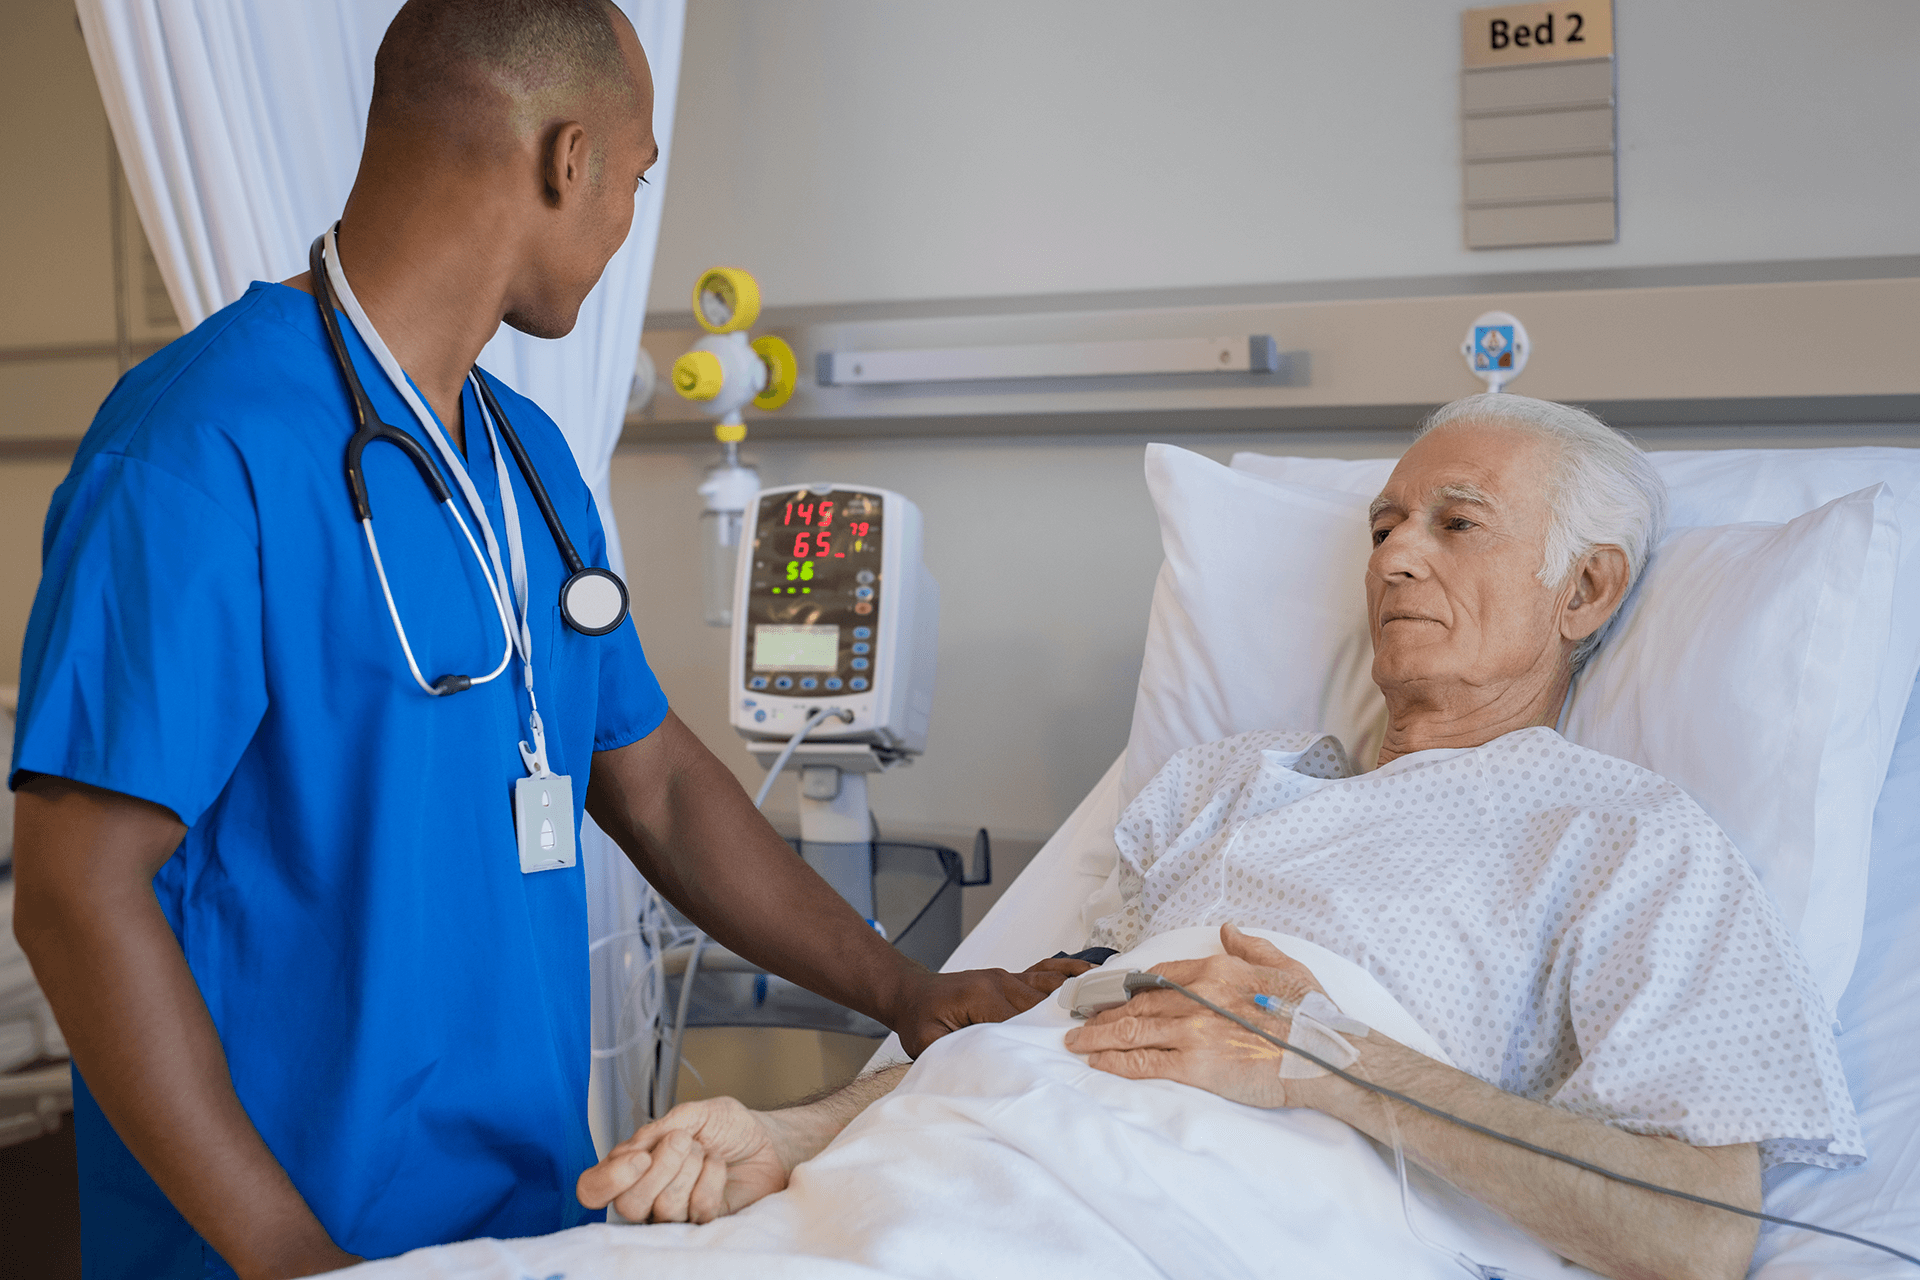 Standardizing sepsis care improves bundle compliance and patient outcomes